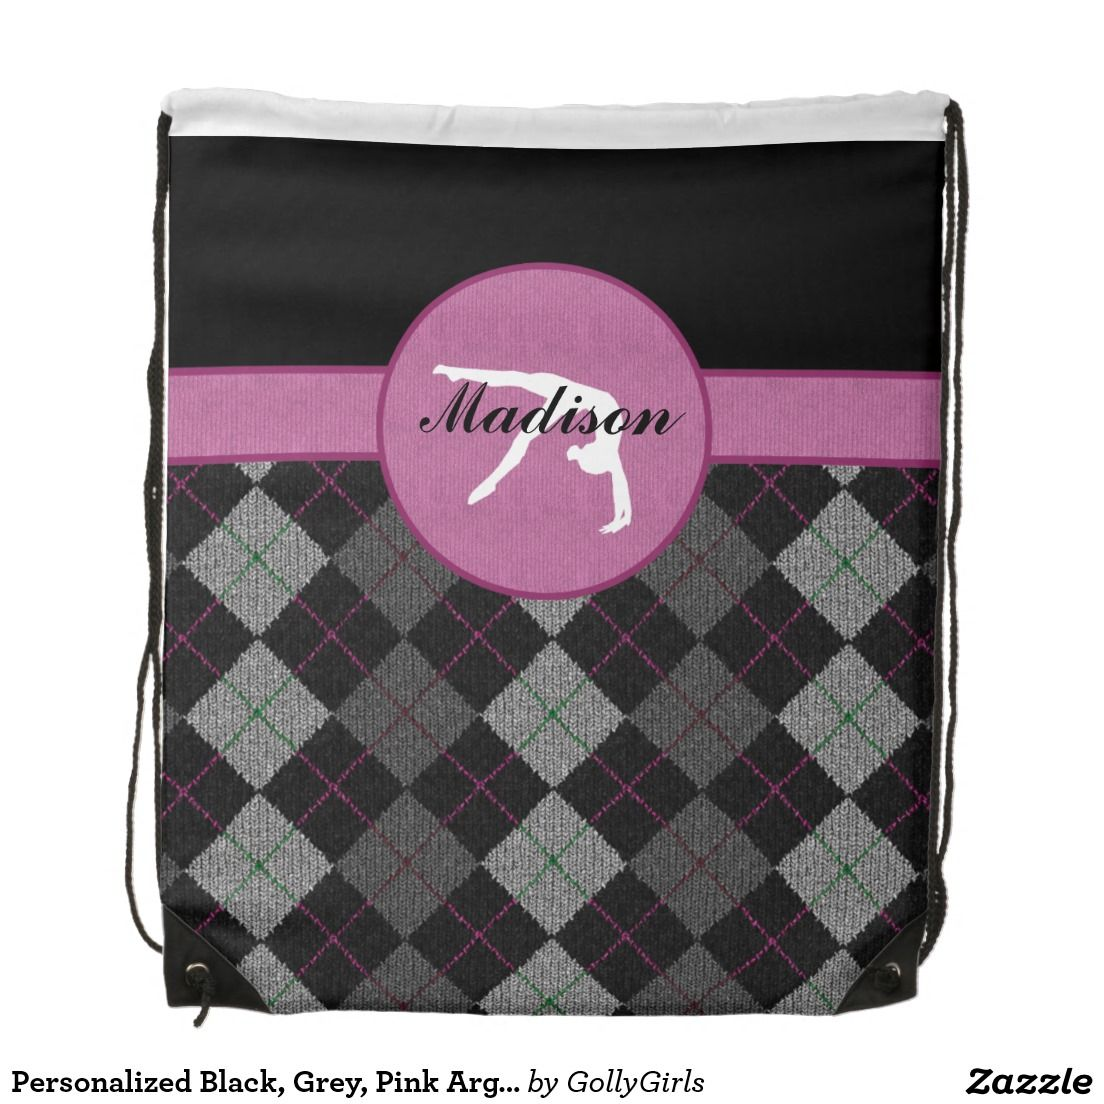 """Personalized Black, Grey, Pink Argyle Gymnastics Drawstring Backpack - Classy gymnastics drawstring backpack with a beautiful black, grey, and pink argyle backdrop. It has a gymnast silhouette inside of a pink circle. Add your own name before ordering! Additionally, use the """"customize it"""" button for more options, including a different font!  ©gollygirls.com"""